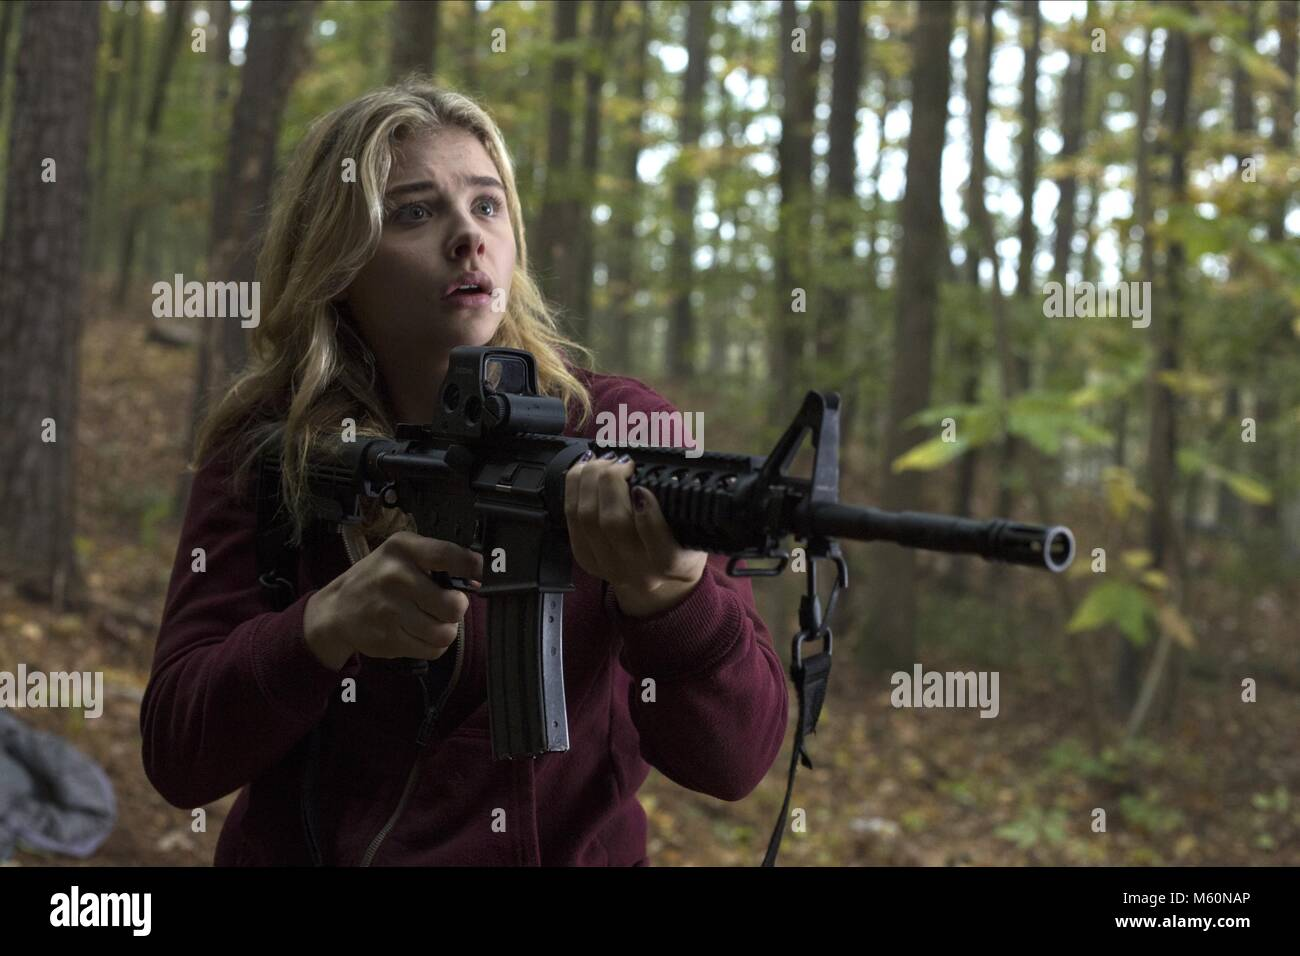 CHLOE GRACE MORETZ THE 5TH WAVE (2016) - Stock Image